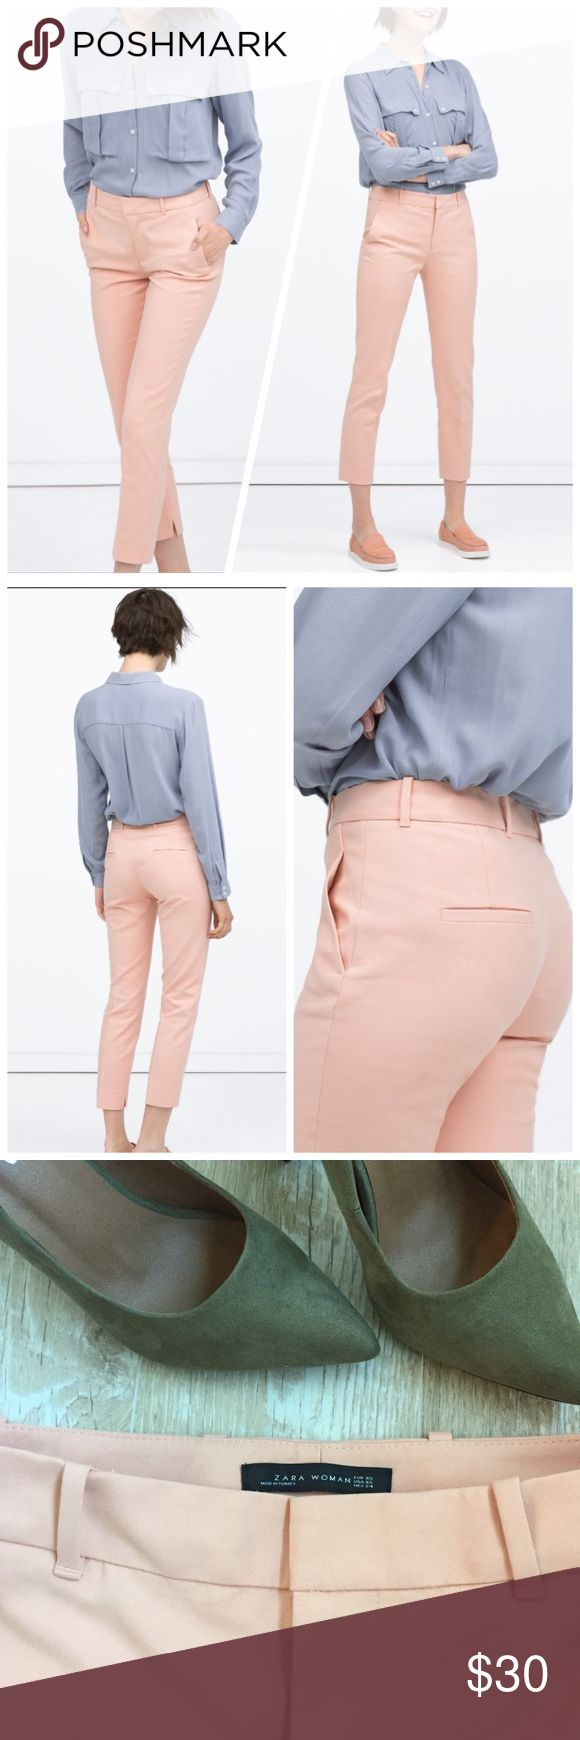 "Blush Zara Trousers Size XS. Good condition. Waist 14"".  Inseam 27"" Zara Pants Ankle & Cropped"